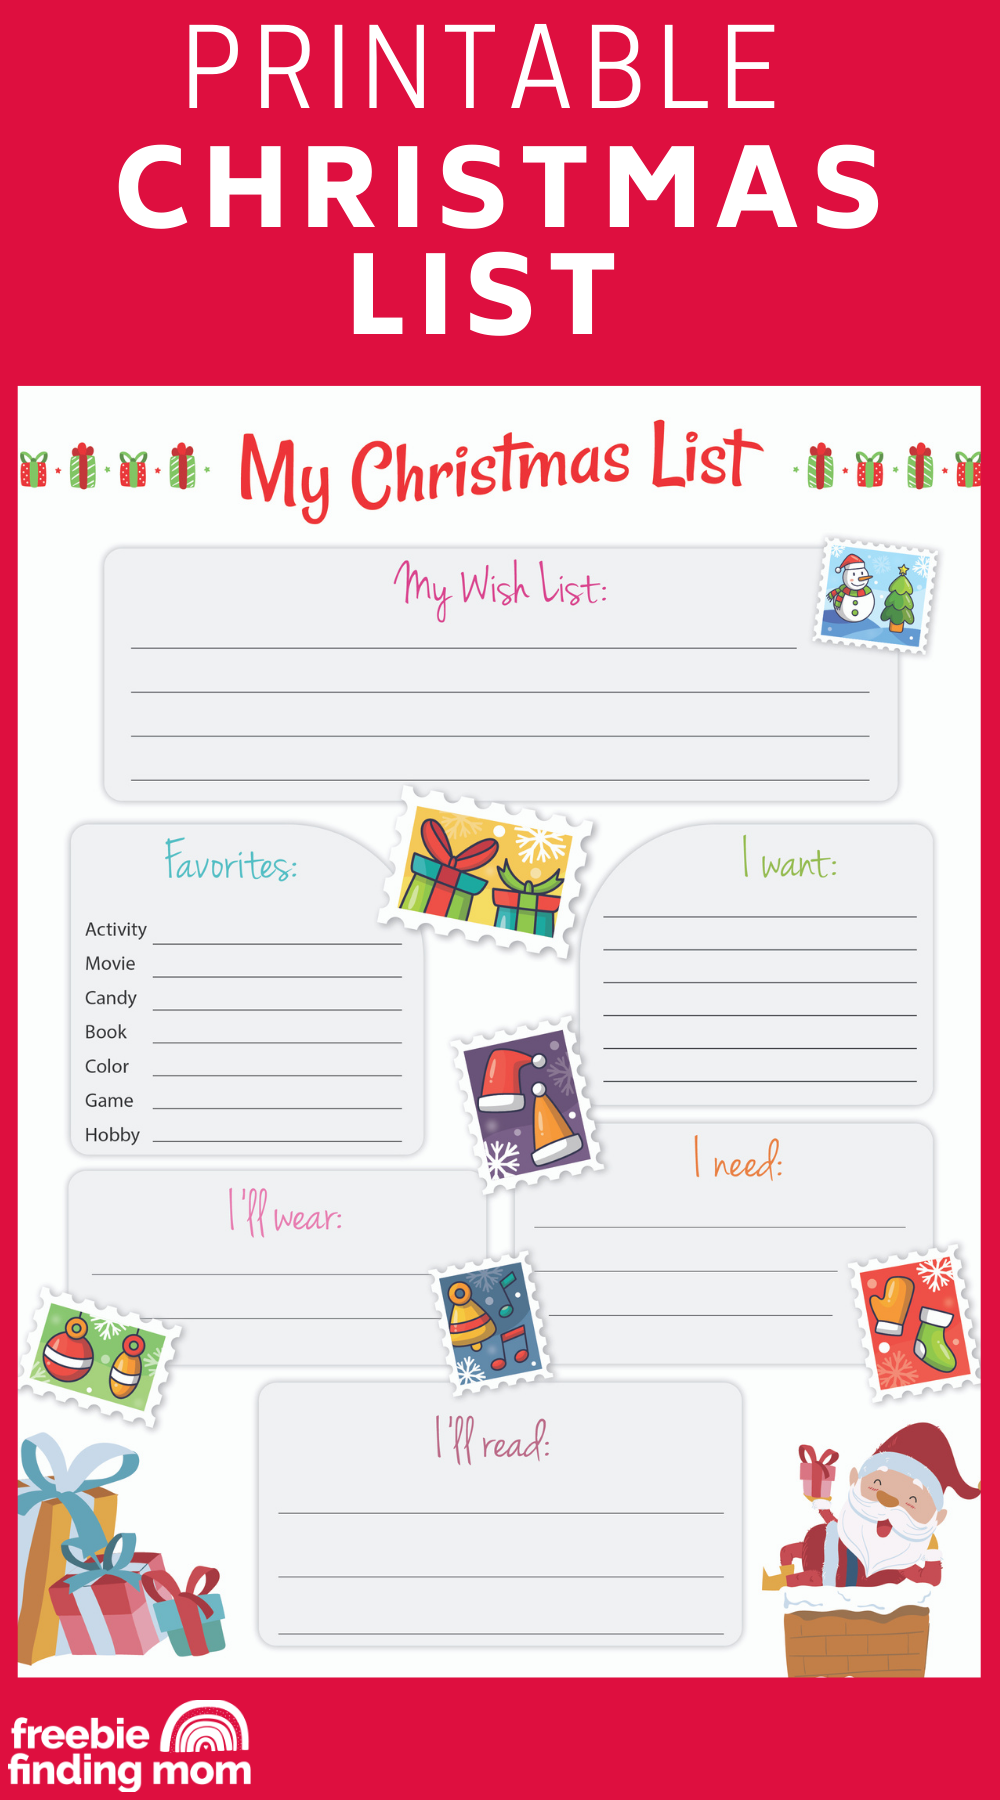 0443dae63a5f0b425cc51eb57f0446b4 - How To Find Out What You Are Getting For Christmas